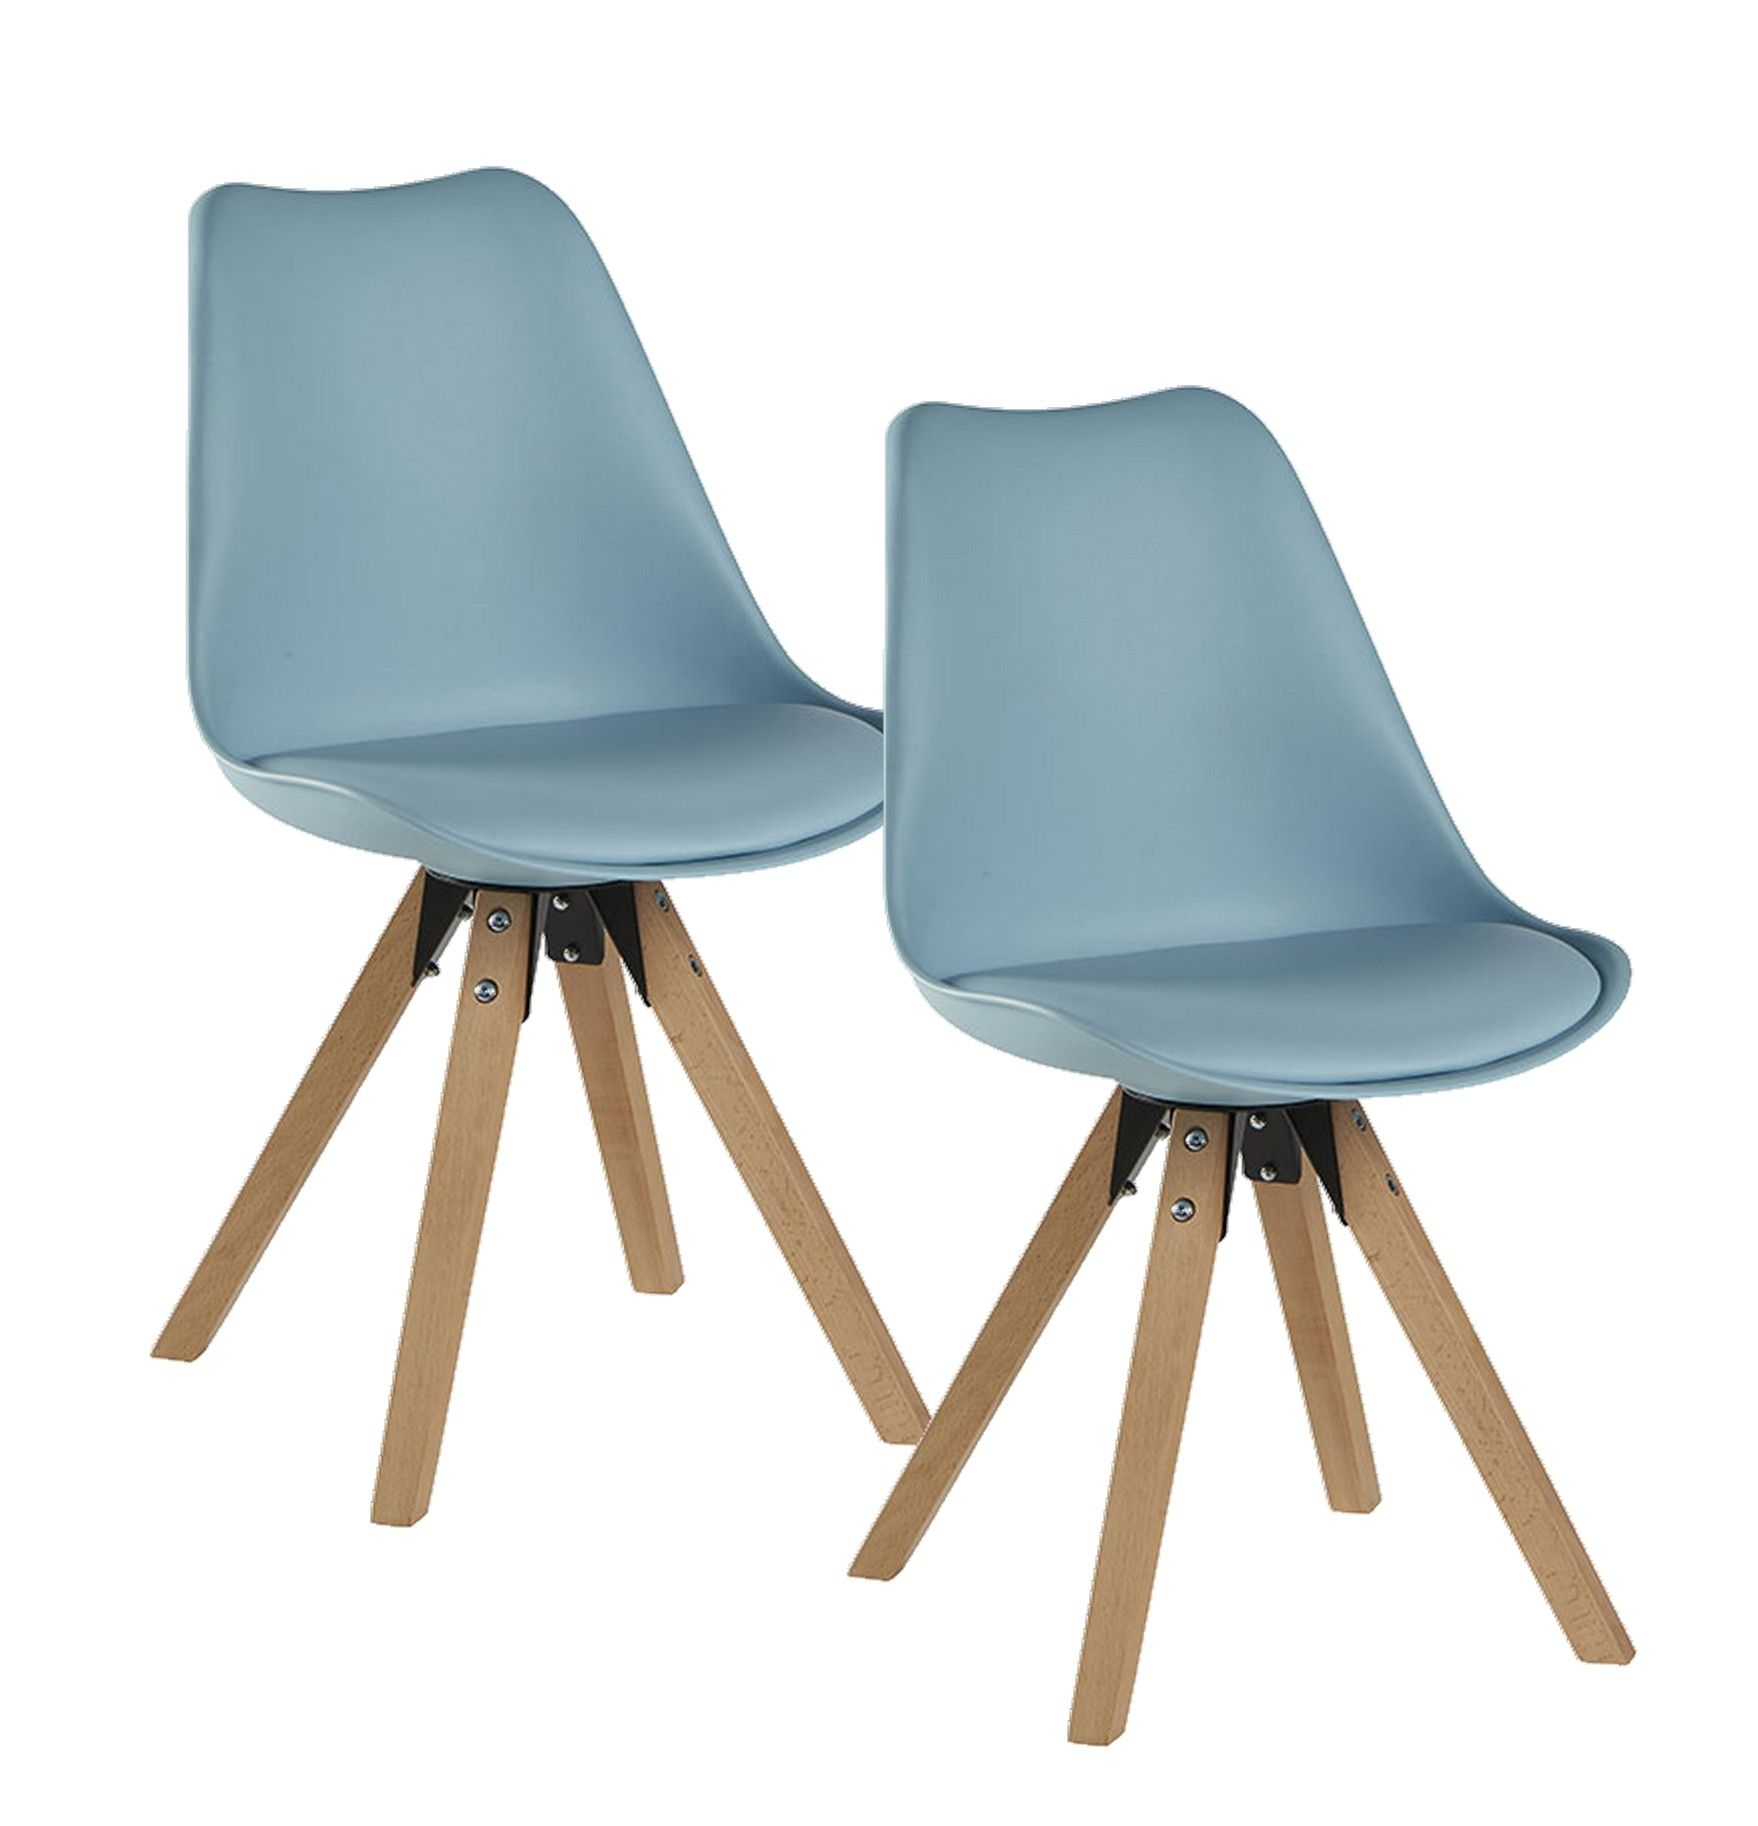 Chaise Scandinave Rembourrée Chaise Scandinave Bleue Tony Lot De 2 En 2019 Chaises Et Bancs